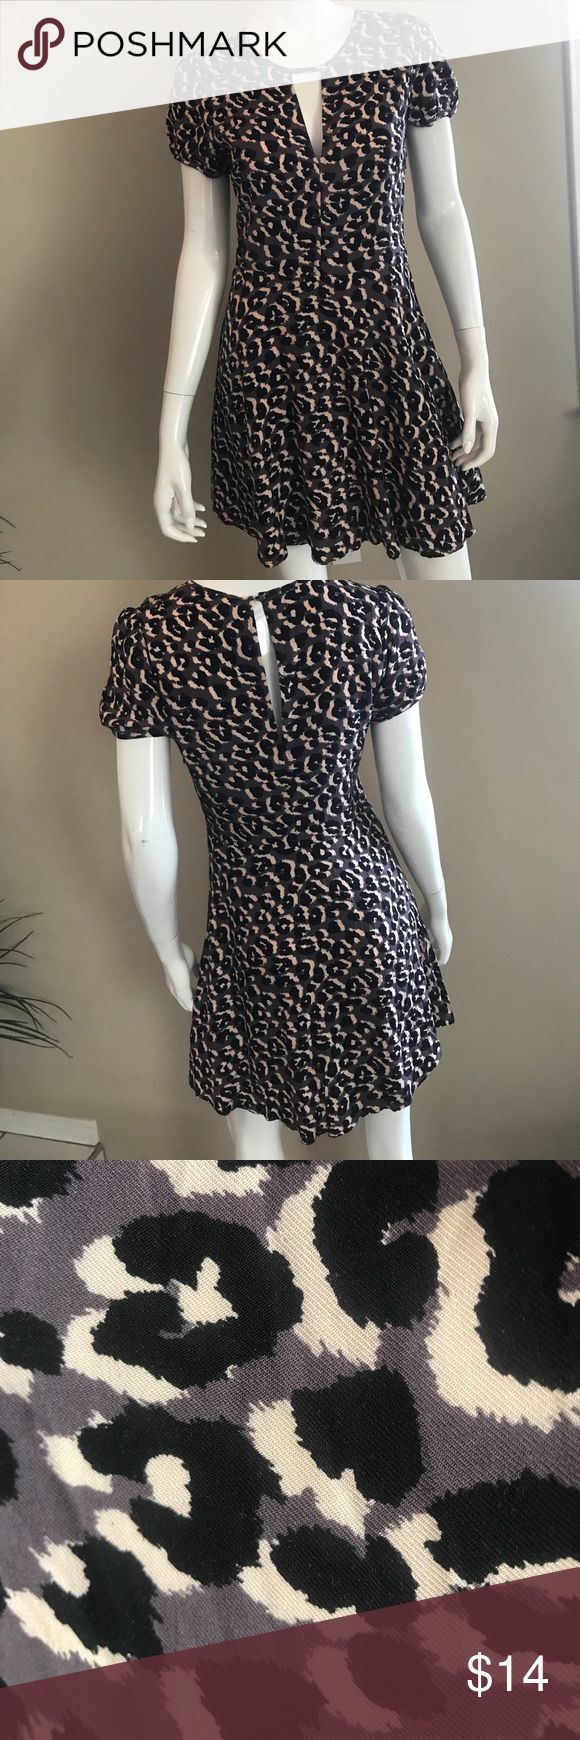 Forever 21, black and lavender purple dress. Fun animal print, mini dress. Shows it's a size medium, but it's a small. Zipper on left side. 100% polyester, hand wash cold, dry flat. Only worn once. Excellent condition. Forever 21 Dresses Mini